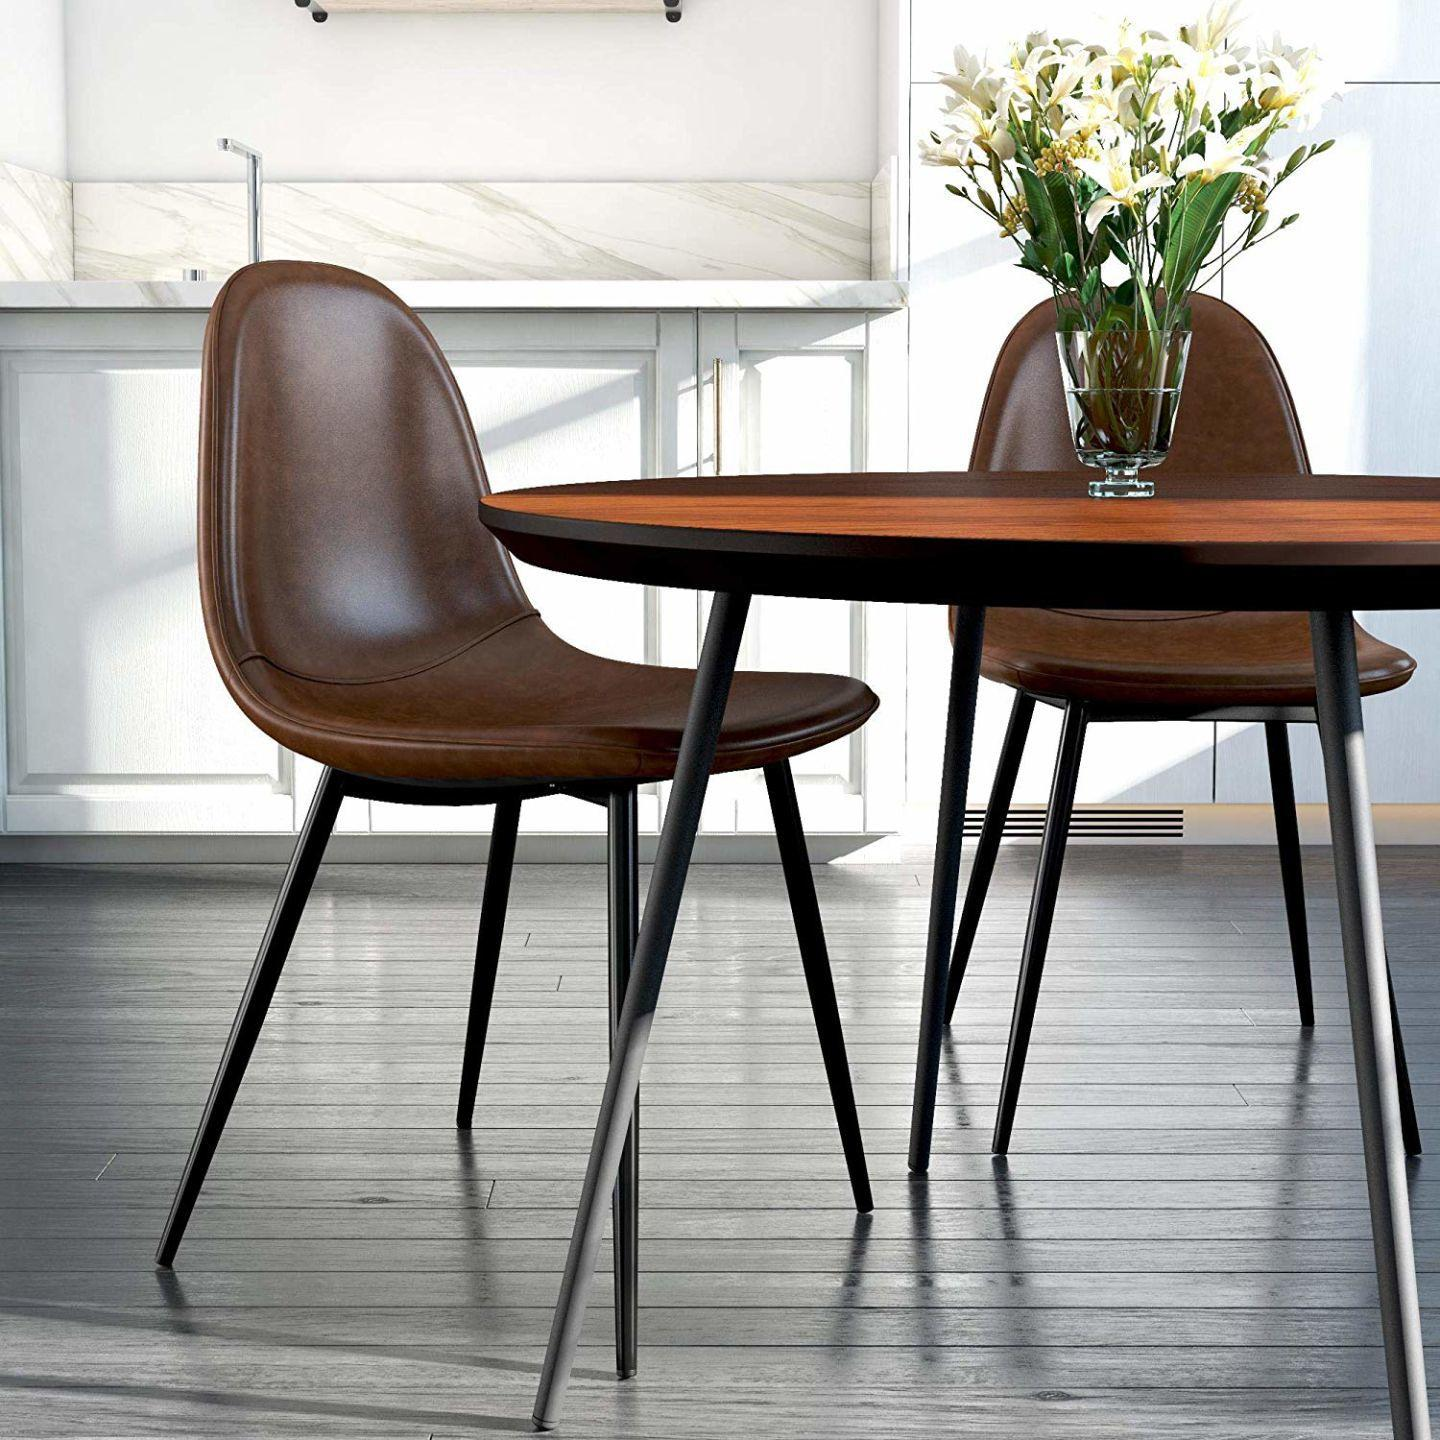 3 Pieces Of Faux Leather Furniture To Help You Get The Look Cruelty Free Home And Garden Chippewa Com